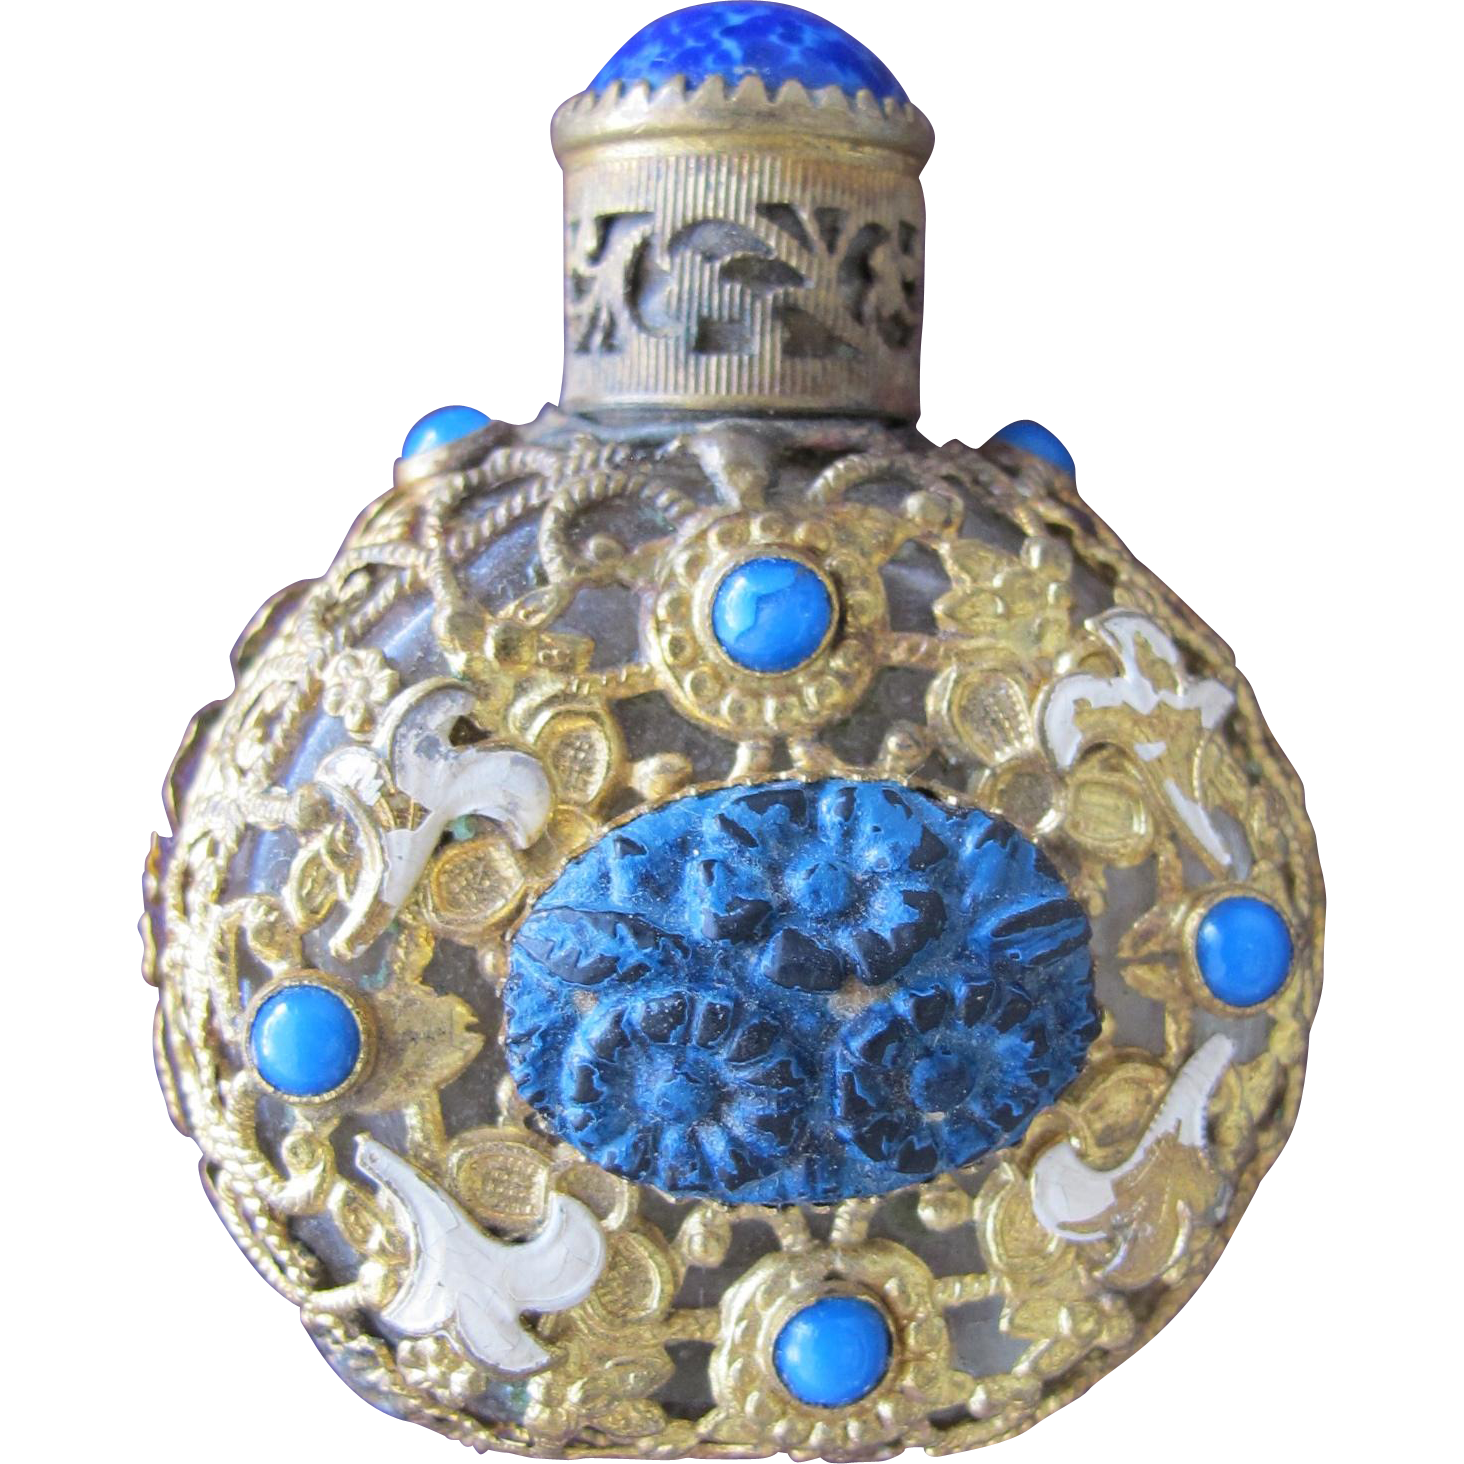 Jeweled Czechoslovakian Perfume Bottle Blue Lapis Stone Enameled Flowers Filigree